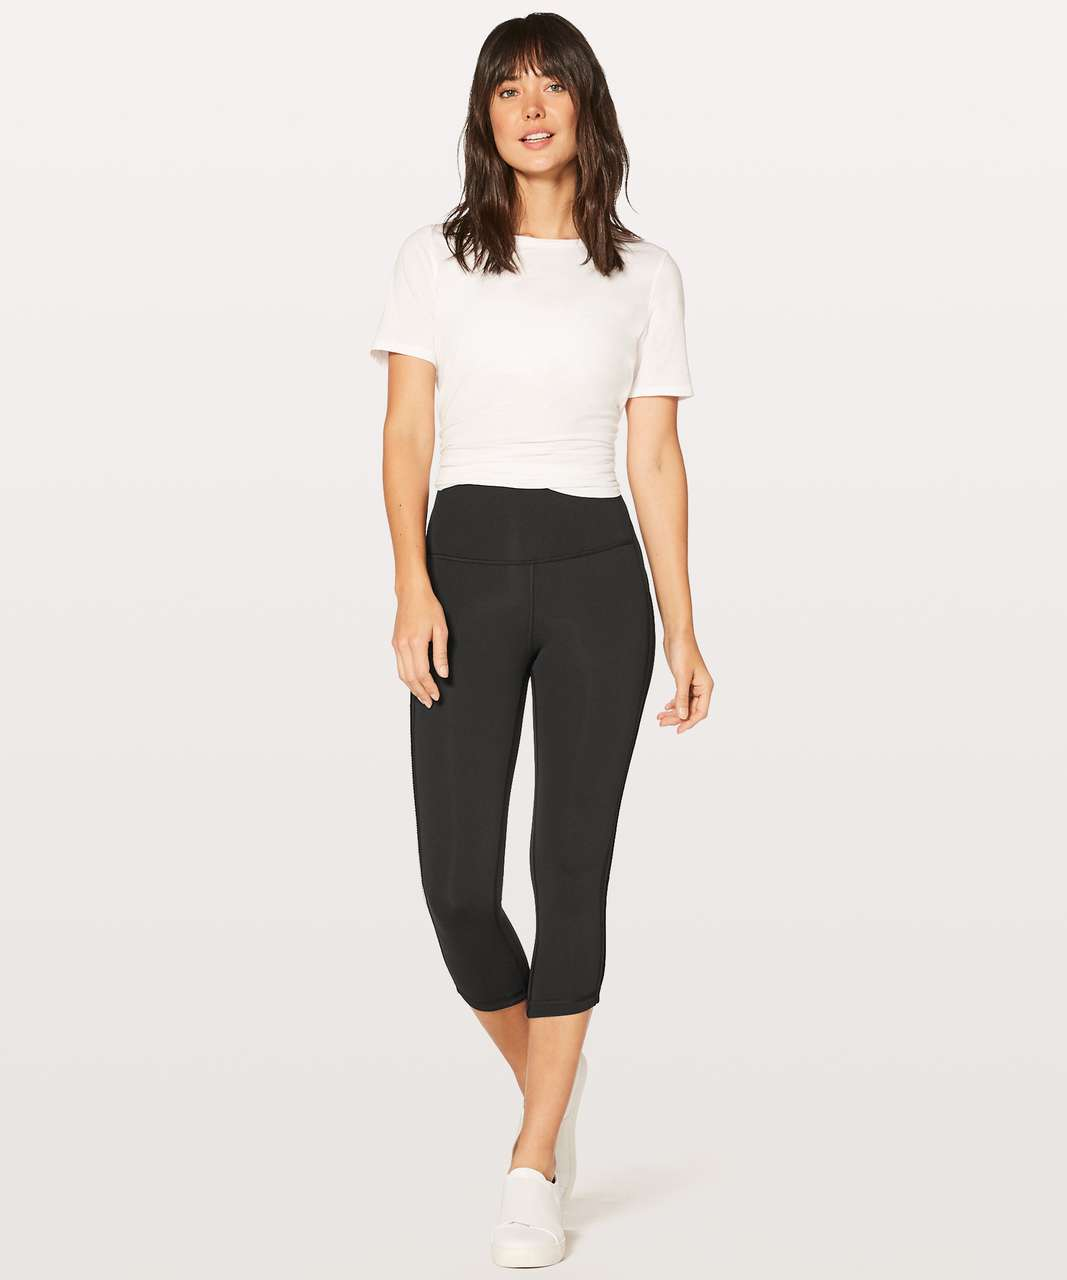 "Lululemon Wunder Under Crop (Hi-Rise) Awaken Full-On Luxtreme 21"" - Black"